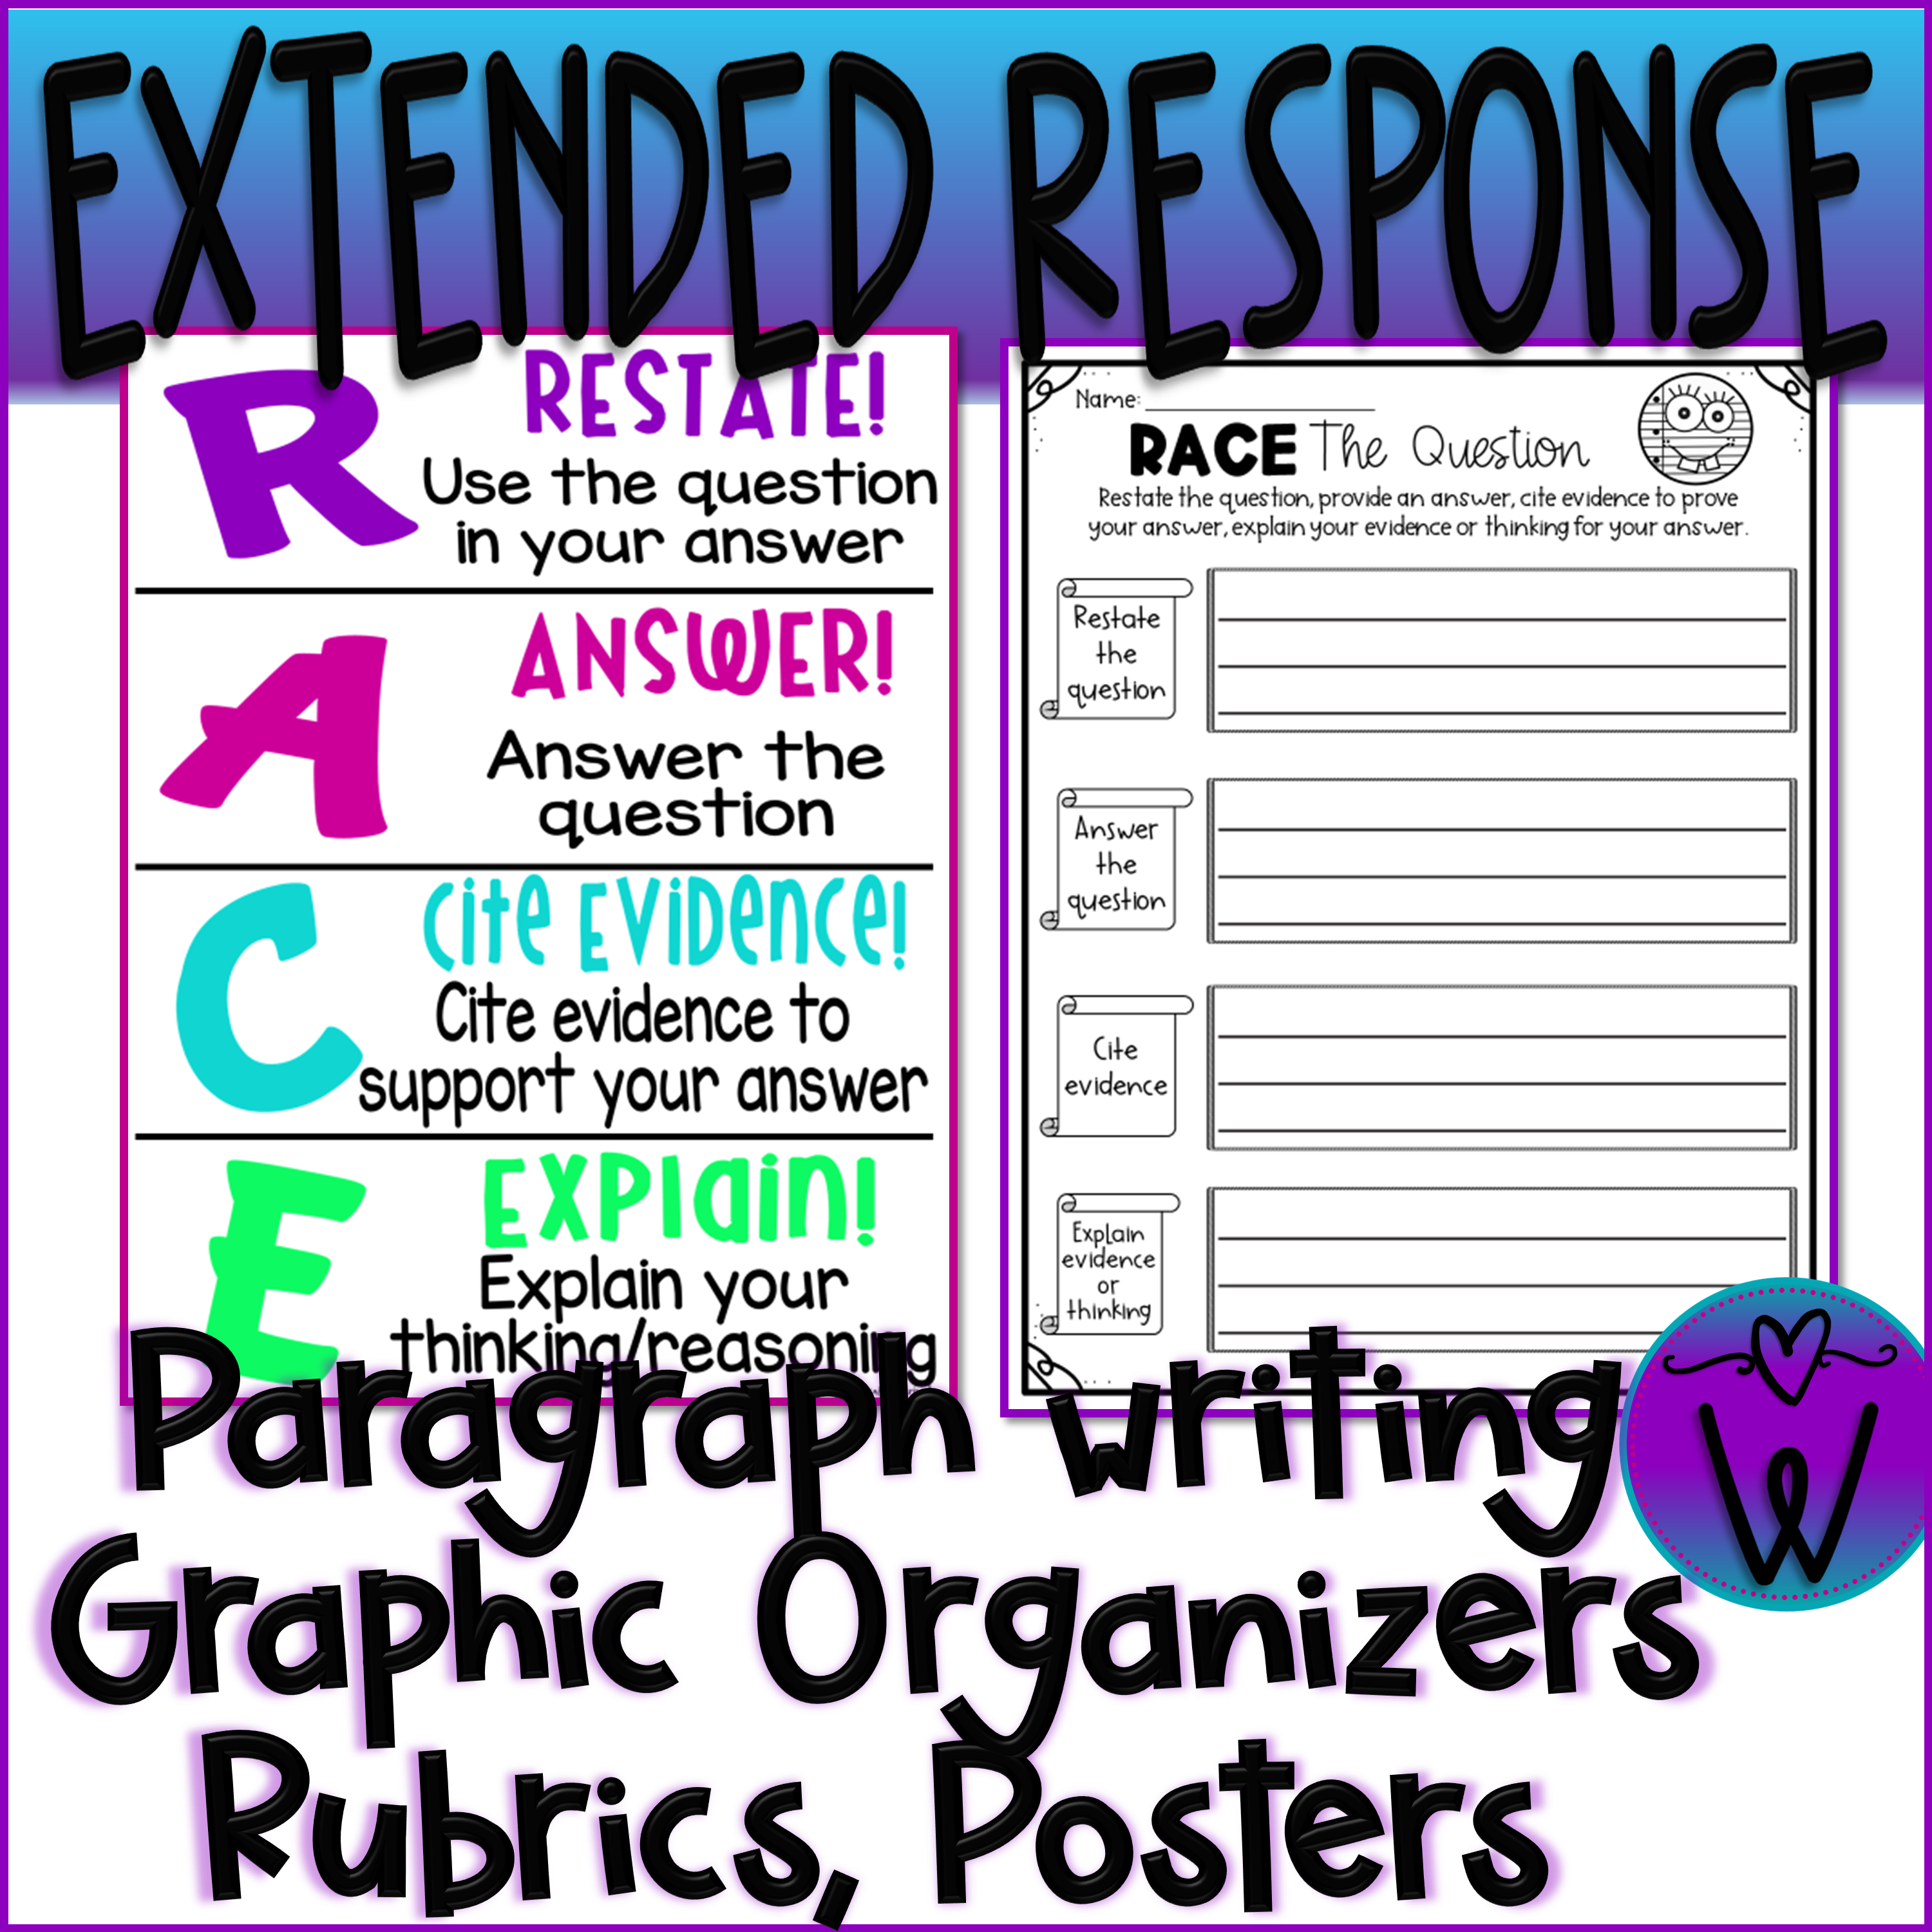 Differentiated Extended Response Writing Rubrics With Race